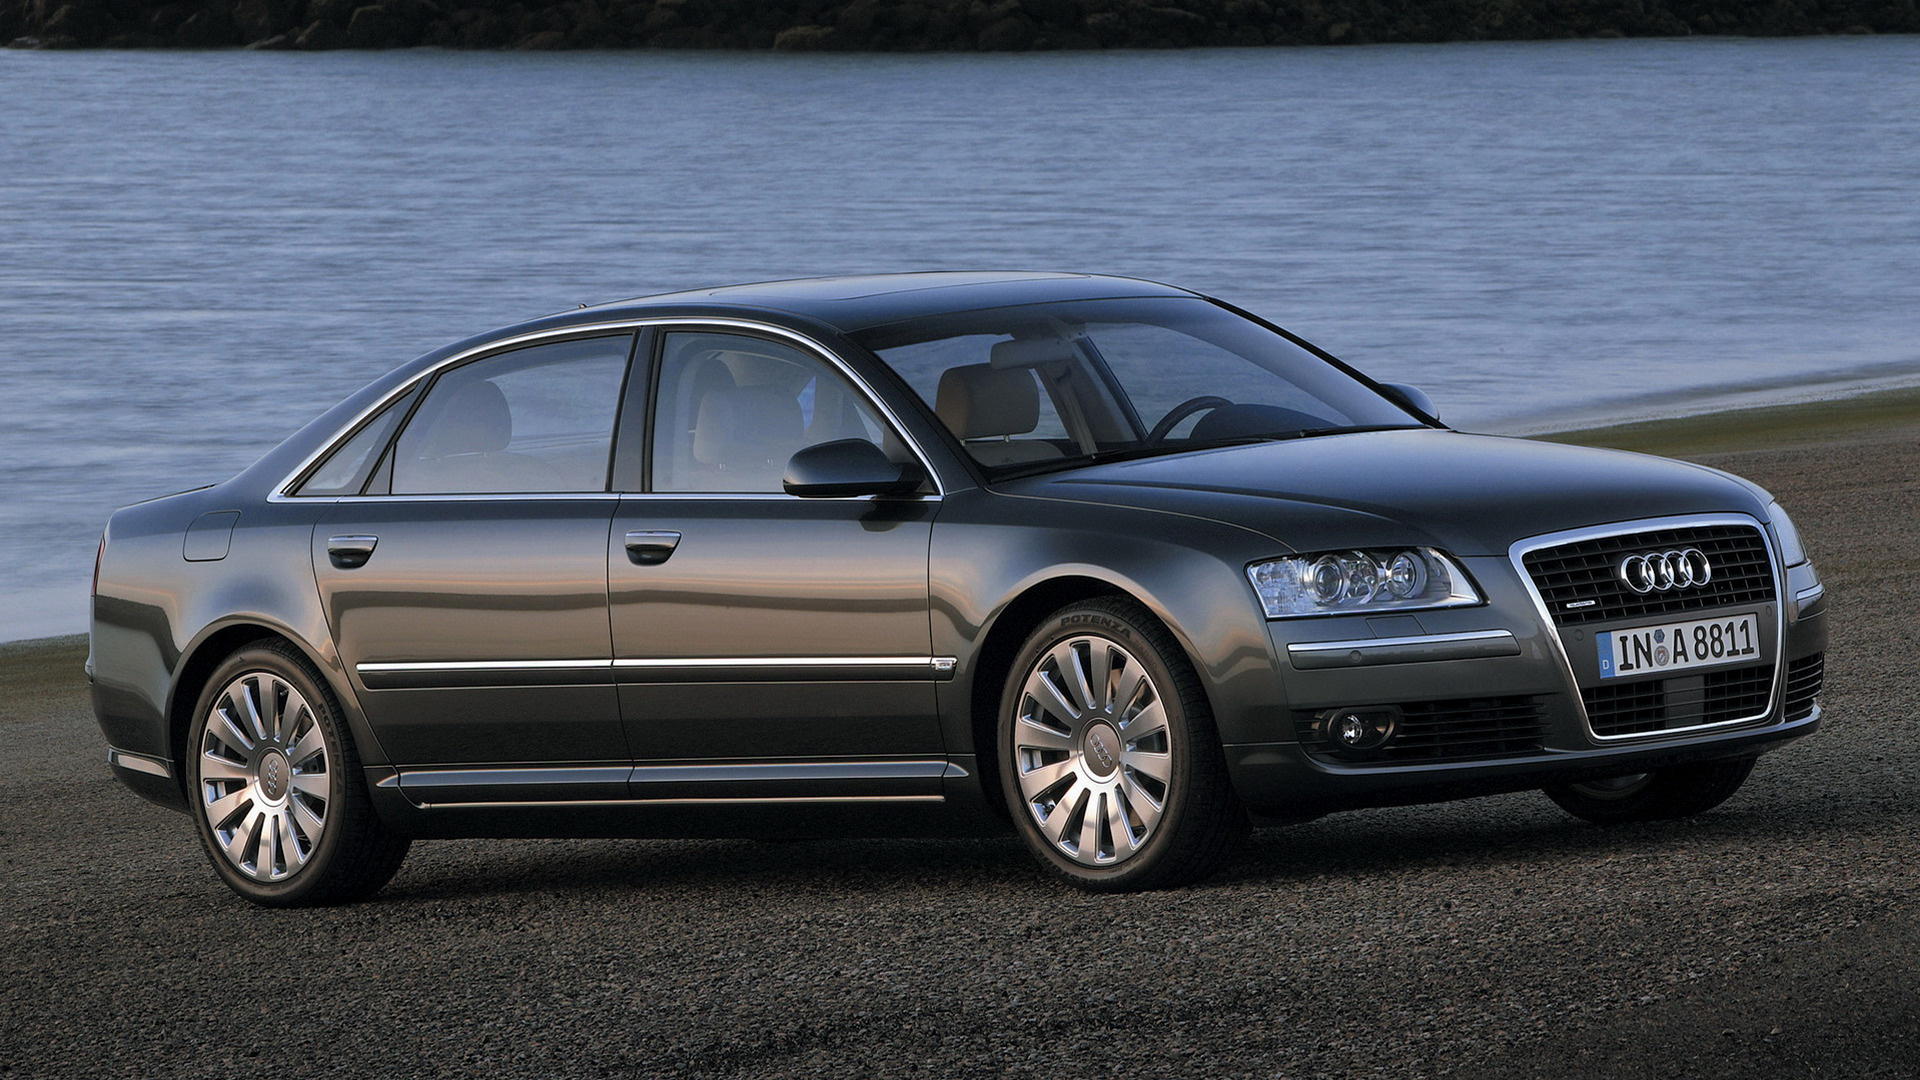 Audi A8 L (2008) Wallpapers and HD Images - Car Pixel